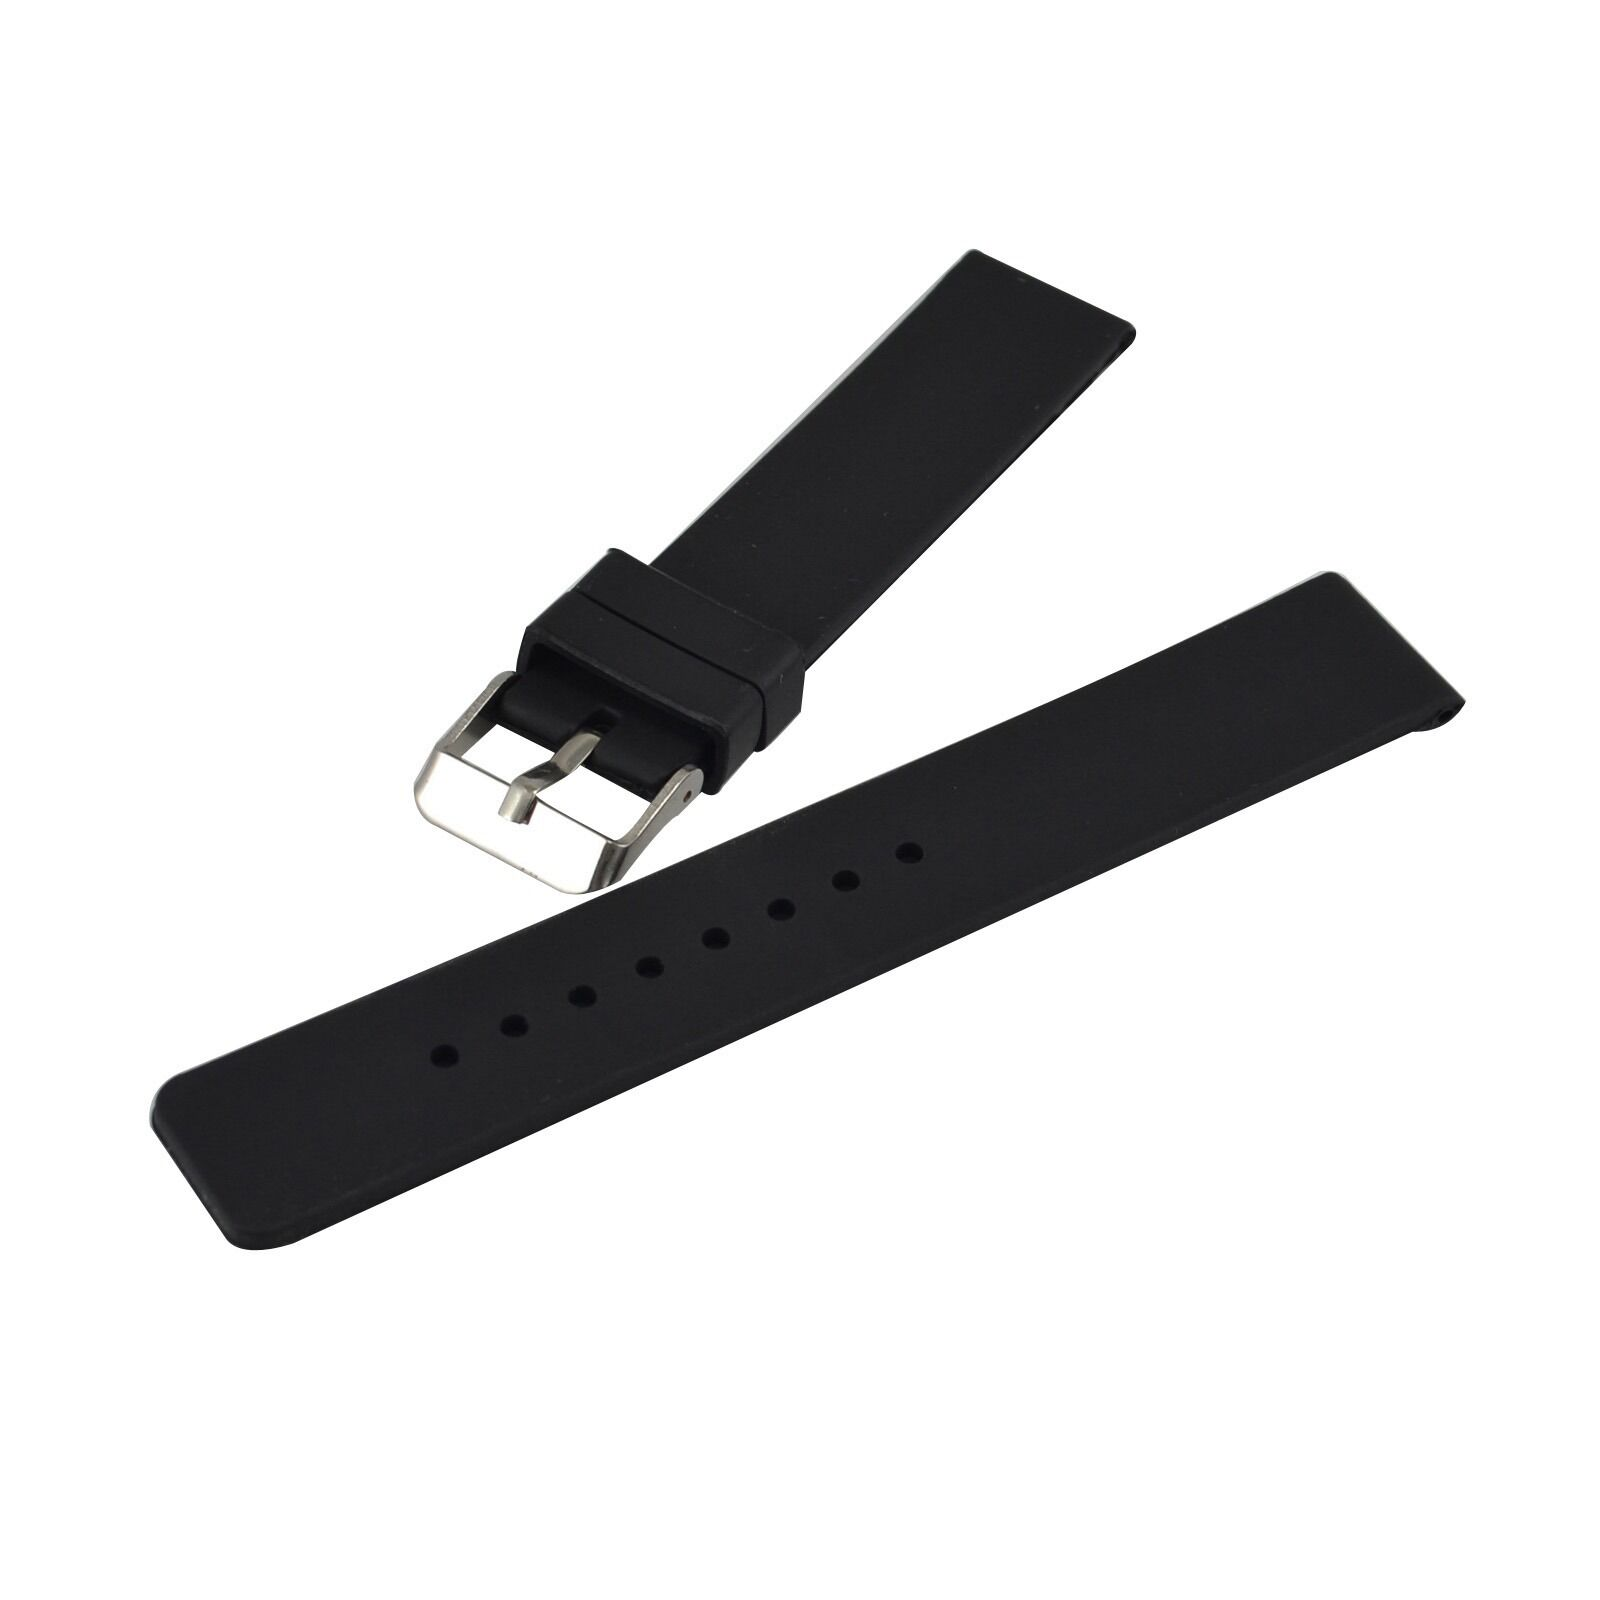 18-24mm Rubber Silicone Watch Band Strap Unisex Deployment B